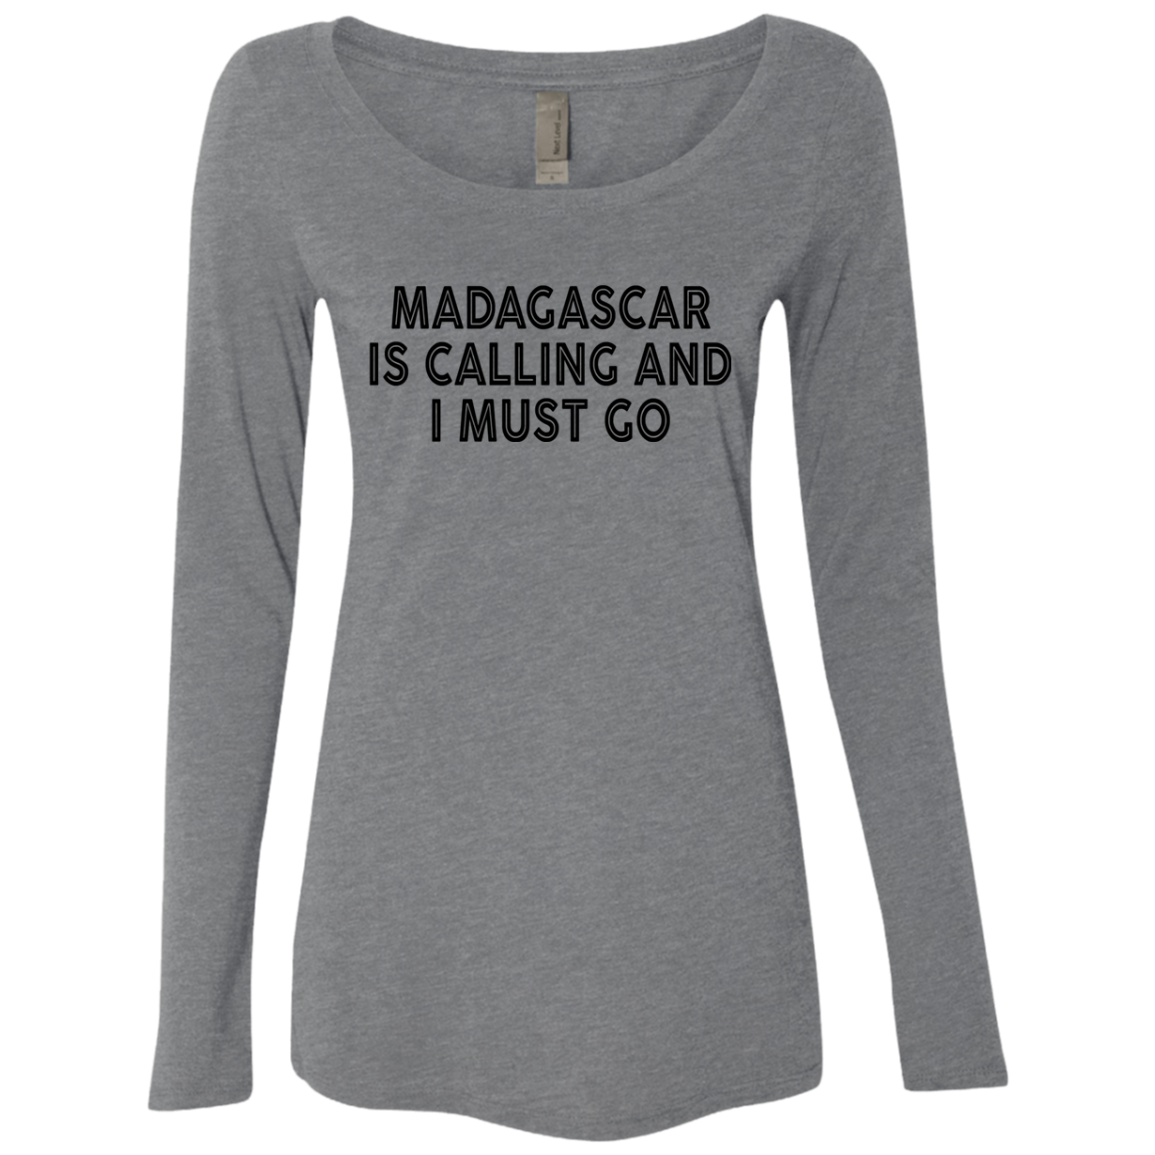 Madagascar Is Calling And I Must Go Women's Long Sleeve Tee